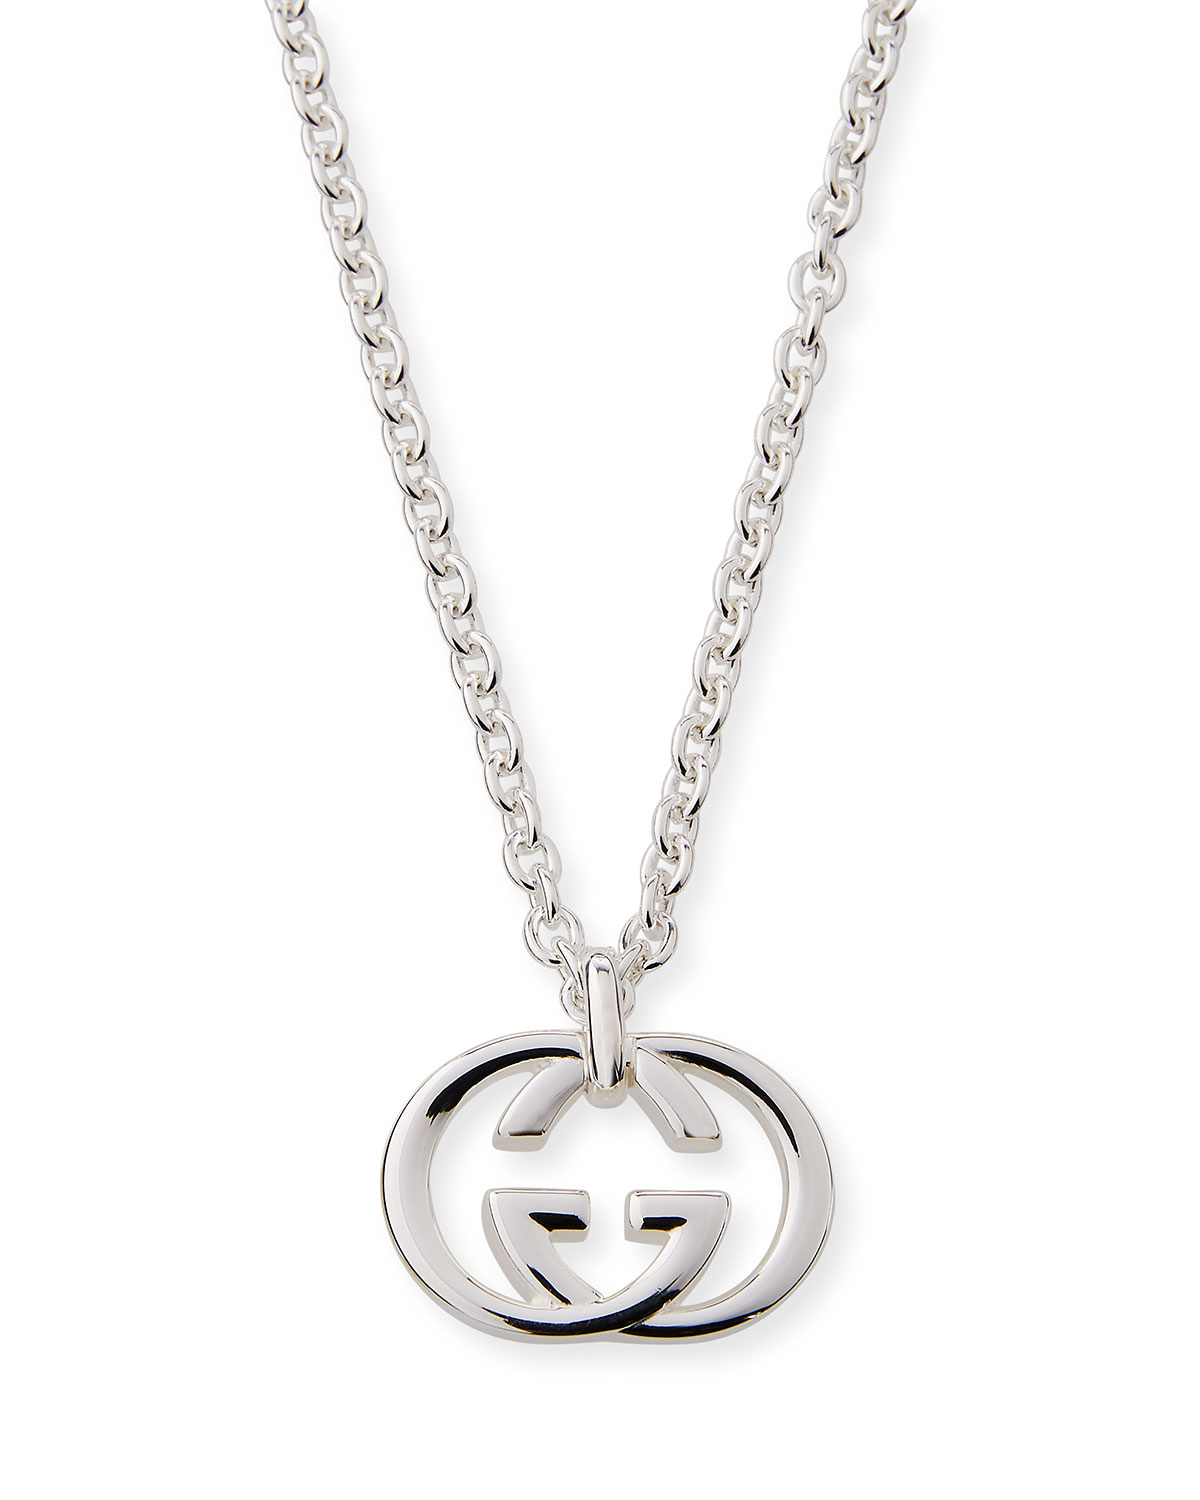 e7c334751 Gucci Men's Britt Interlocking GG Pendant Necklace | Neiman Marcus